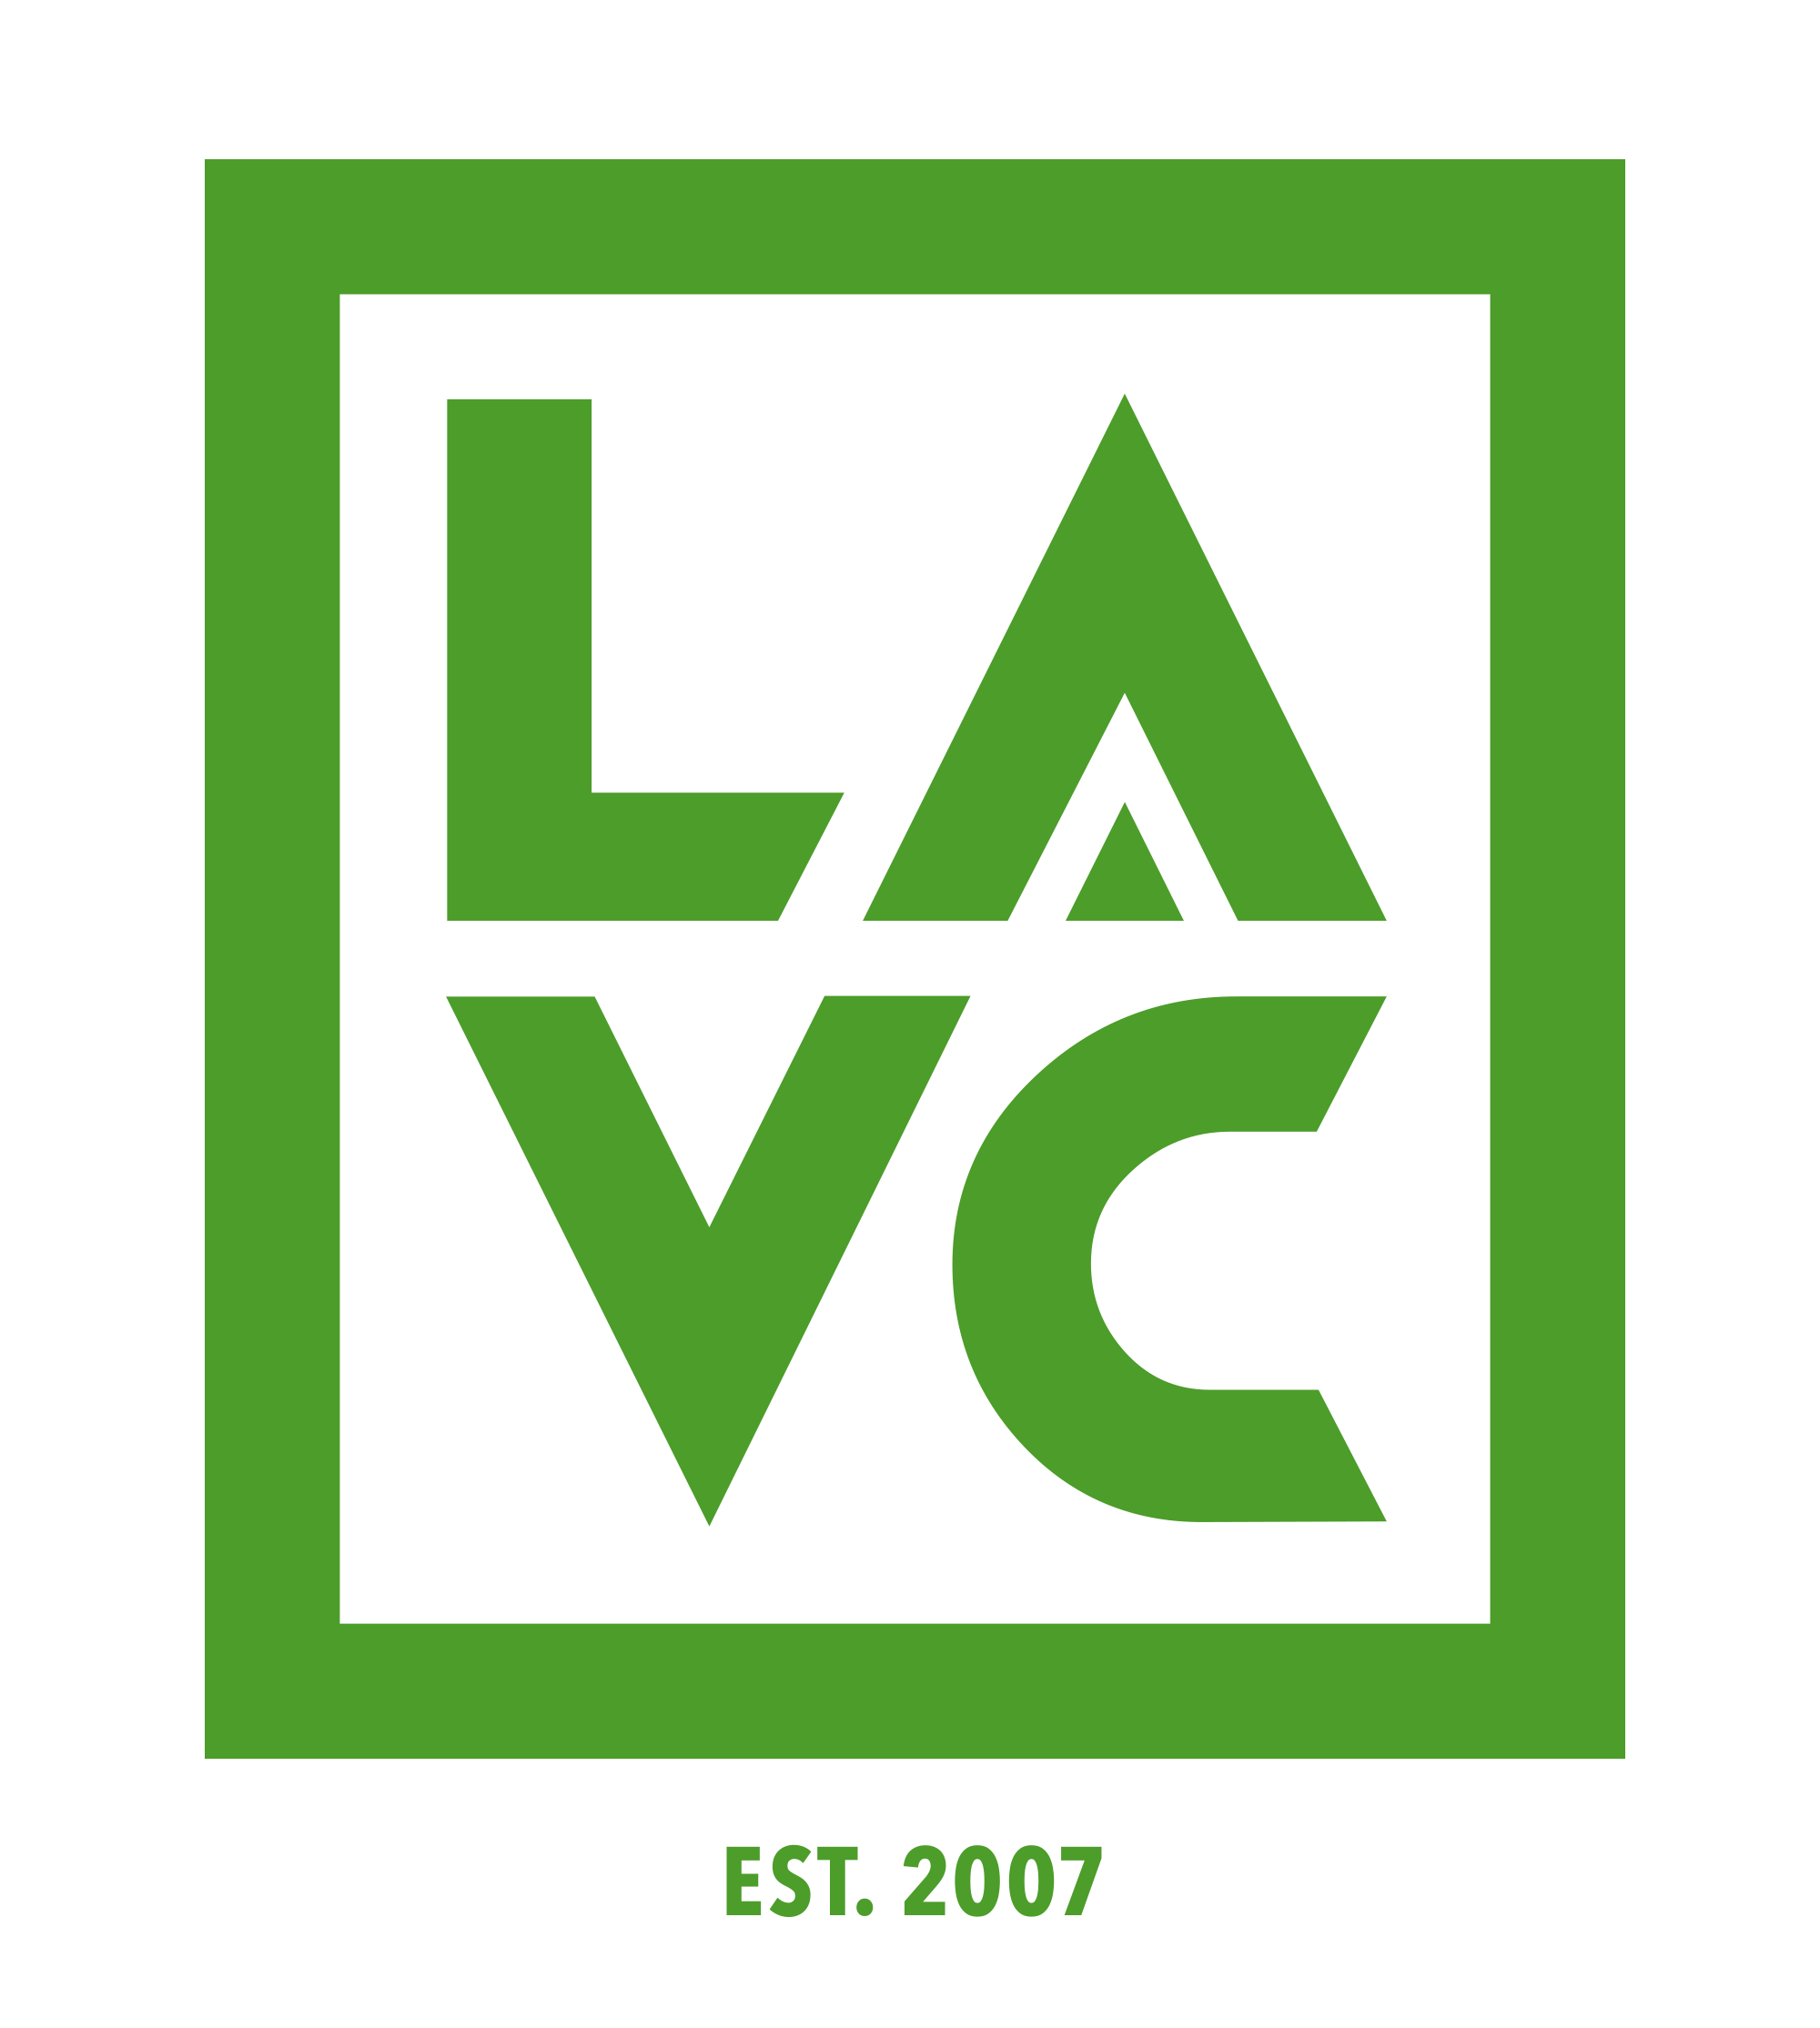 LAVC - Los Angeles Variety Cannabis